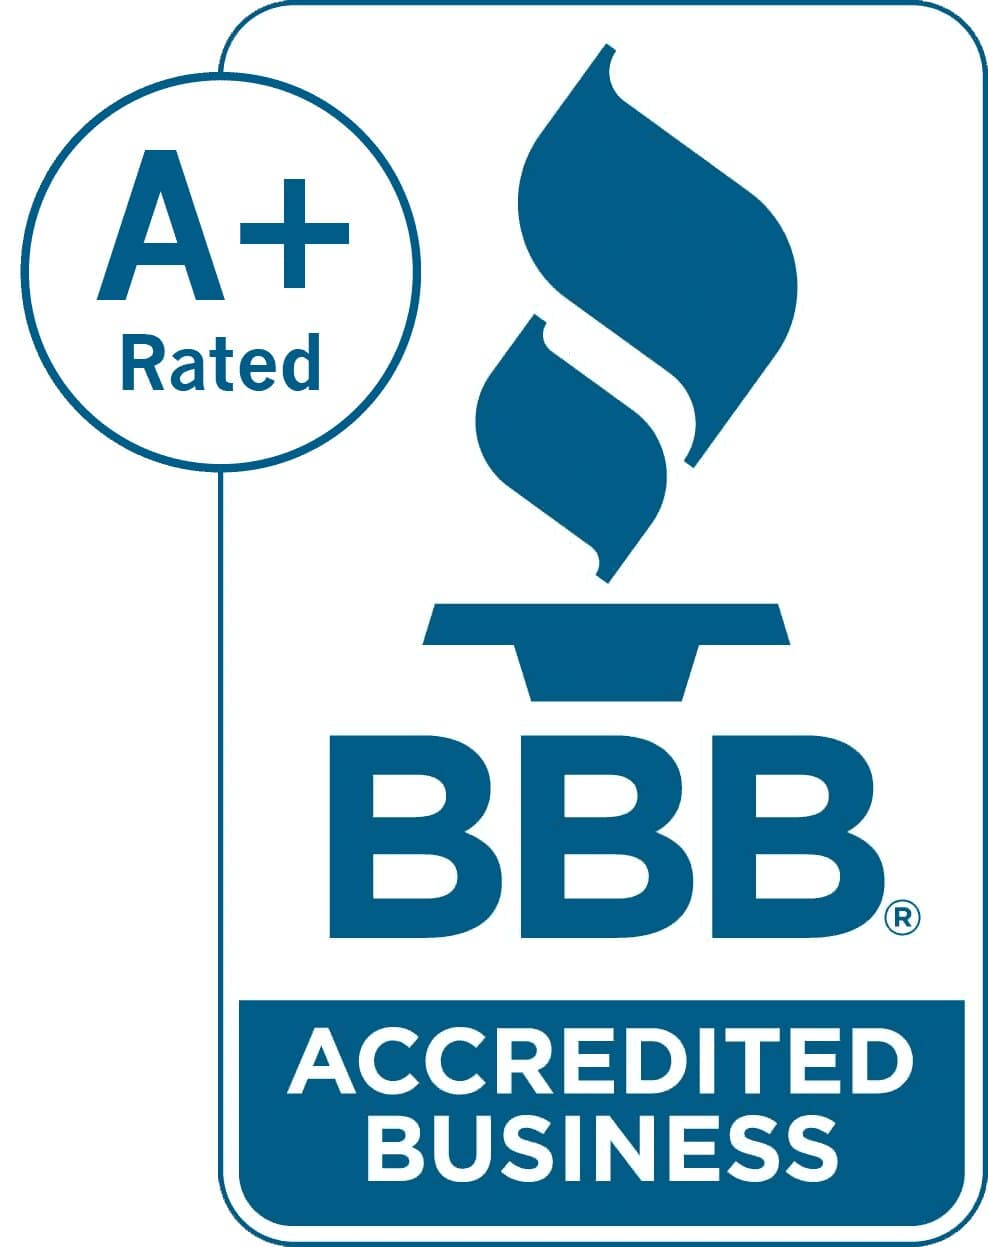 A+ with BBB for HVAC repair